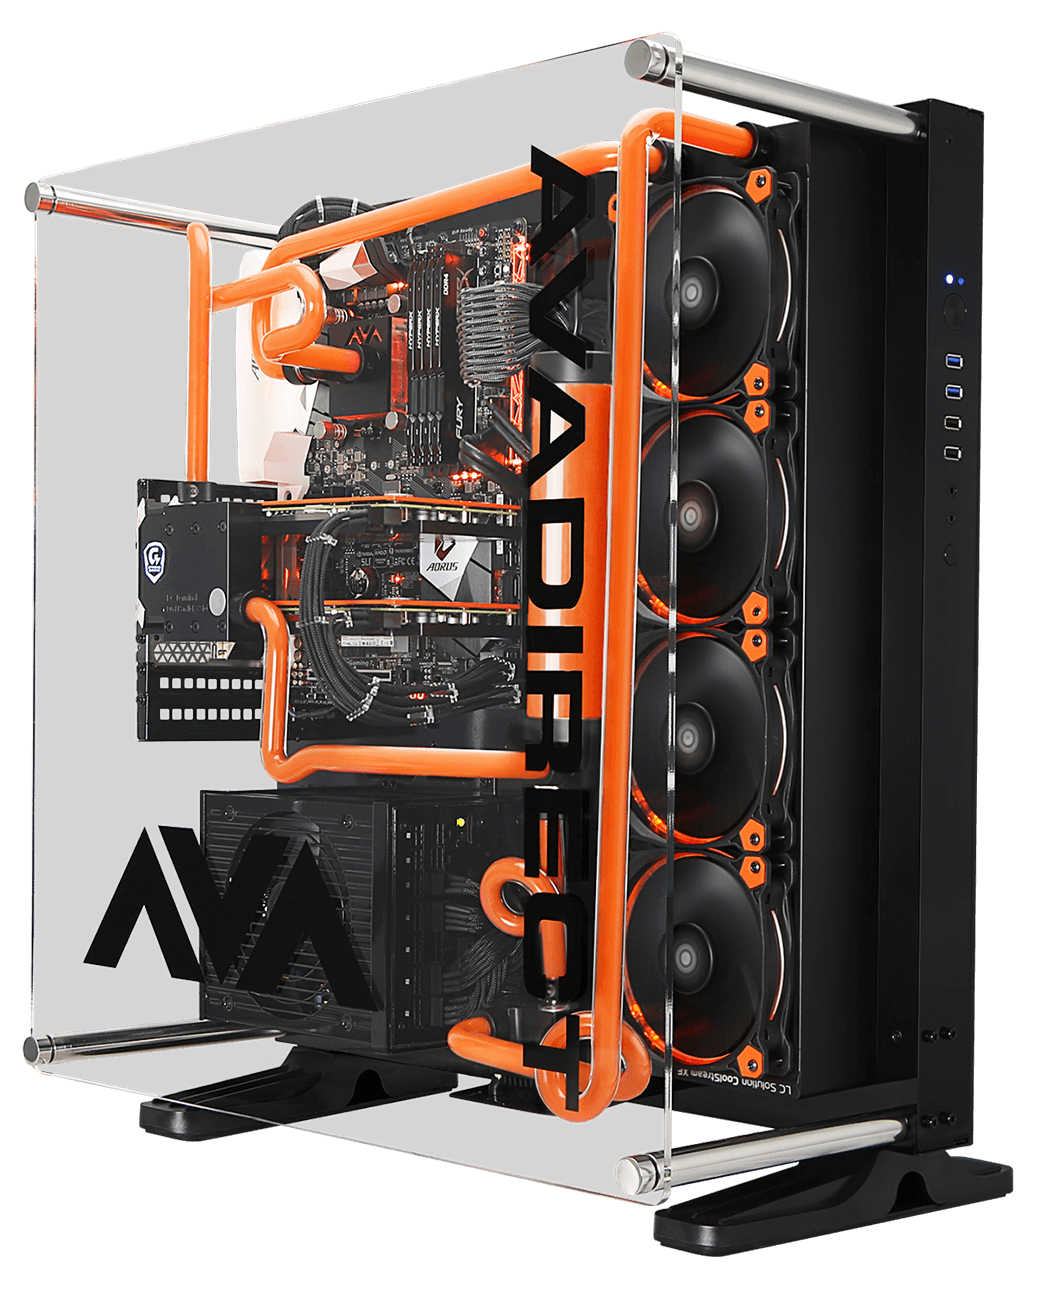 If You Re At Ces Come See The Ava Z270 Scorpio Is On Display At The Gigabyte Suite In Caesars Palace Palace Ba Custom Pc Custom Computer Case Gaming Pc Build